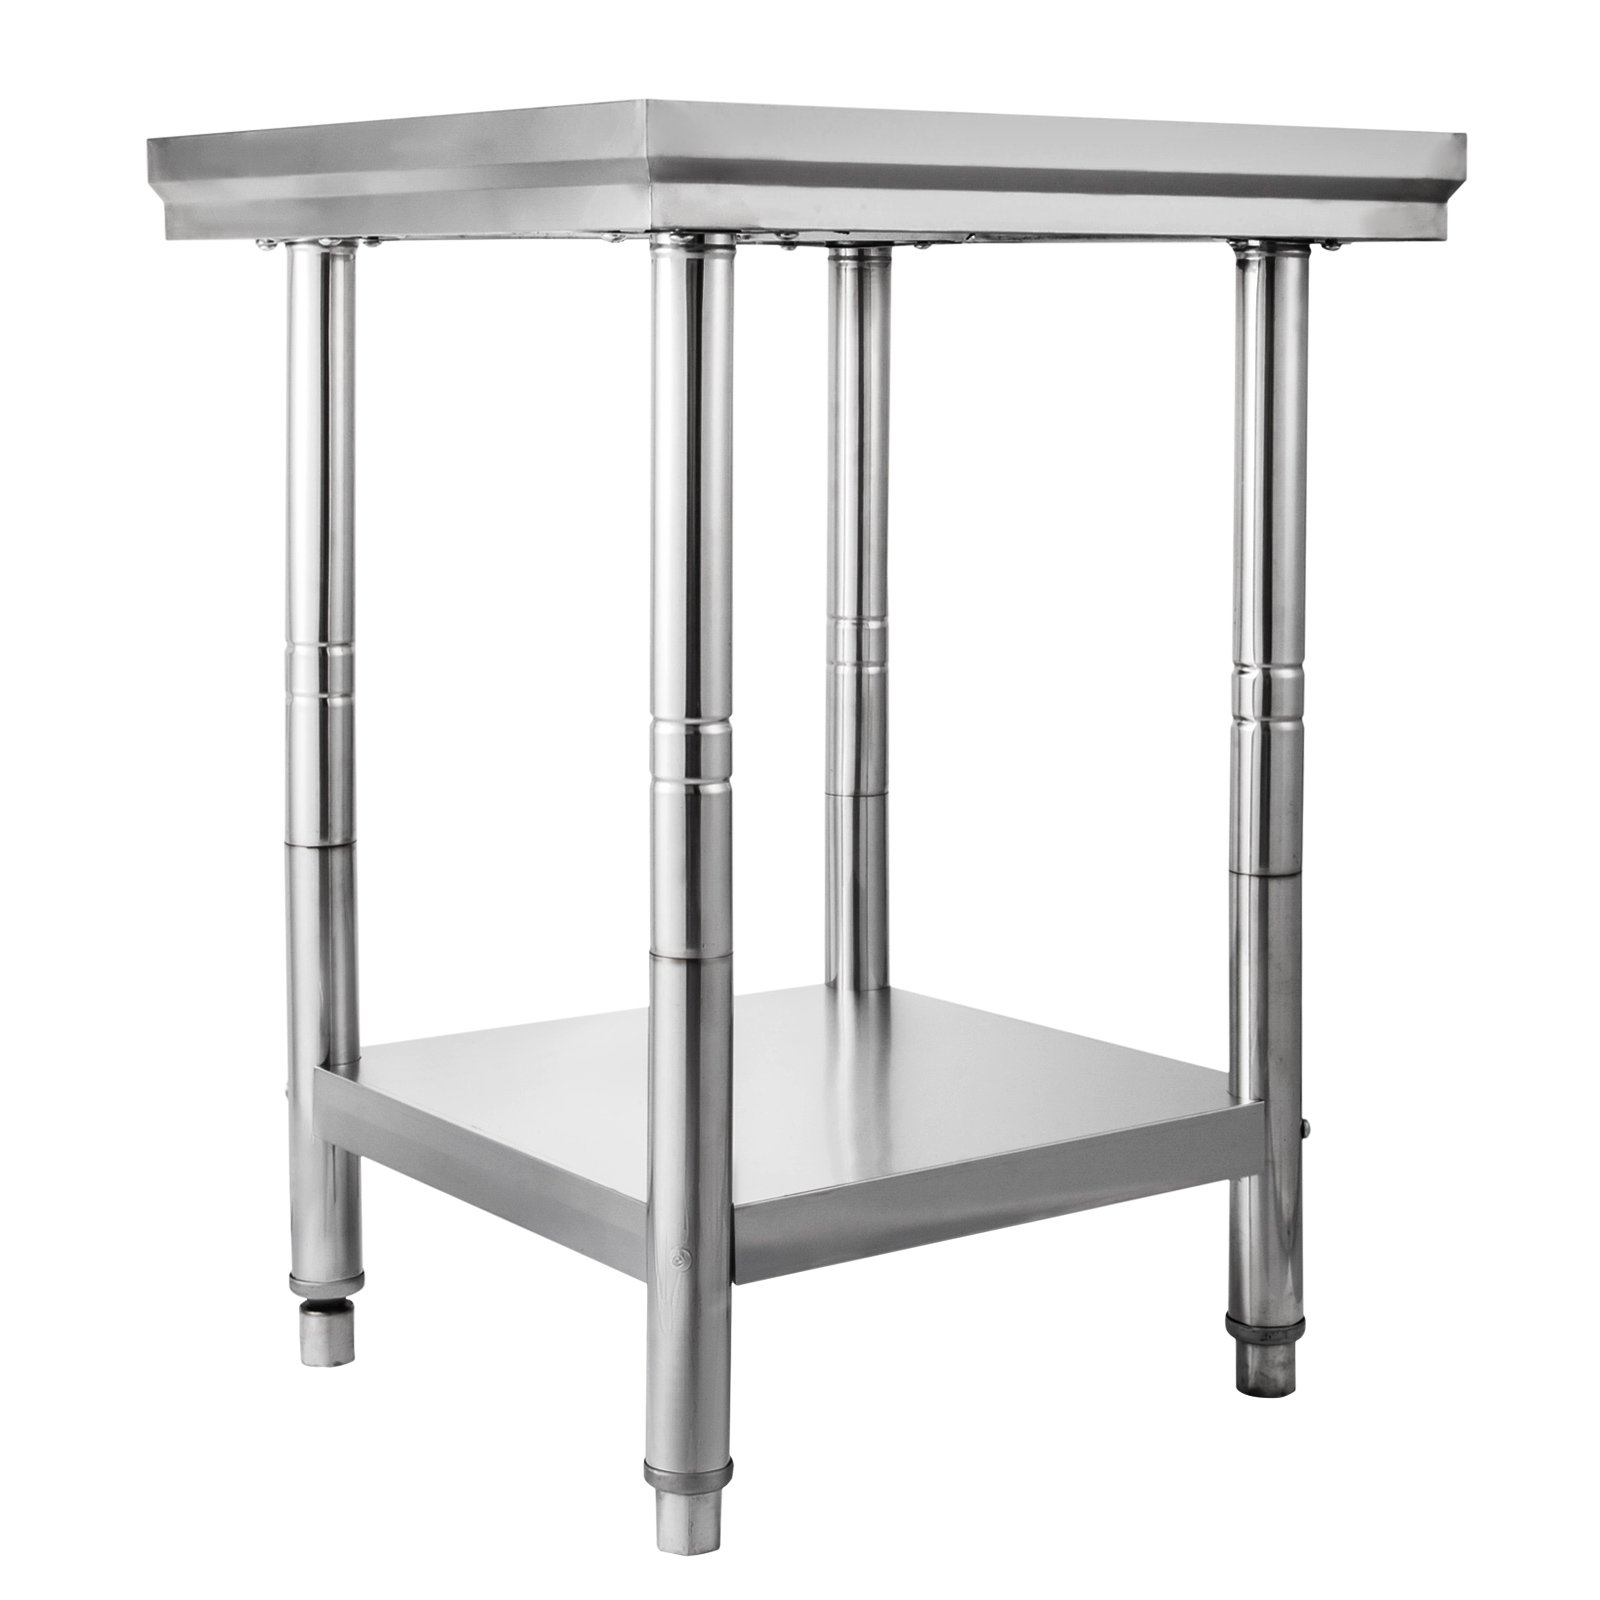 Onionfree 24 x 24 Inch Stainless Steel Commercial Workstation Kitchen Prep and Work Table for Kitchen Commercial Restaurant bar (24x24x31.5 inch)